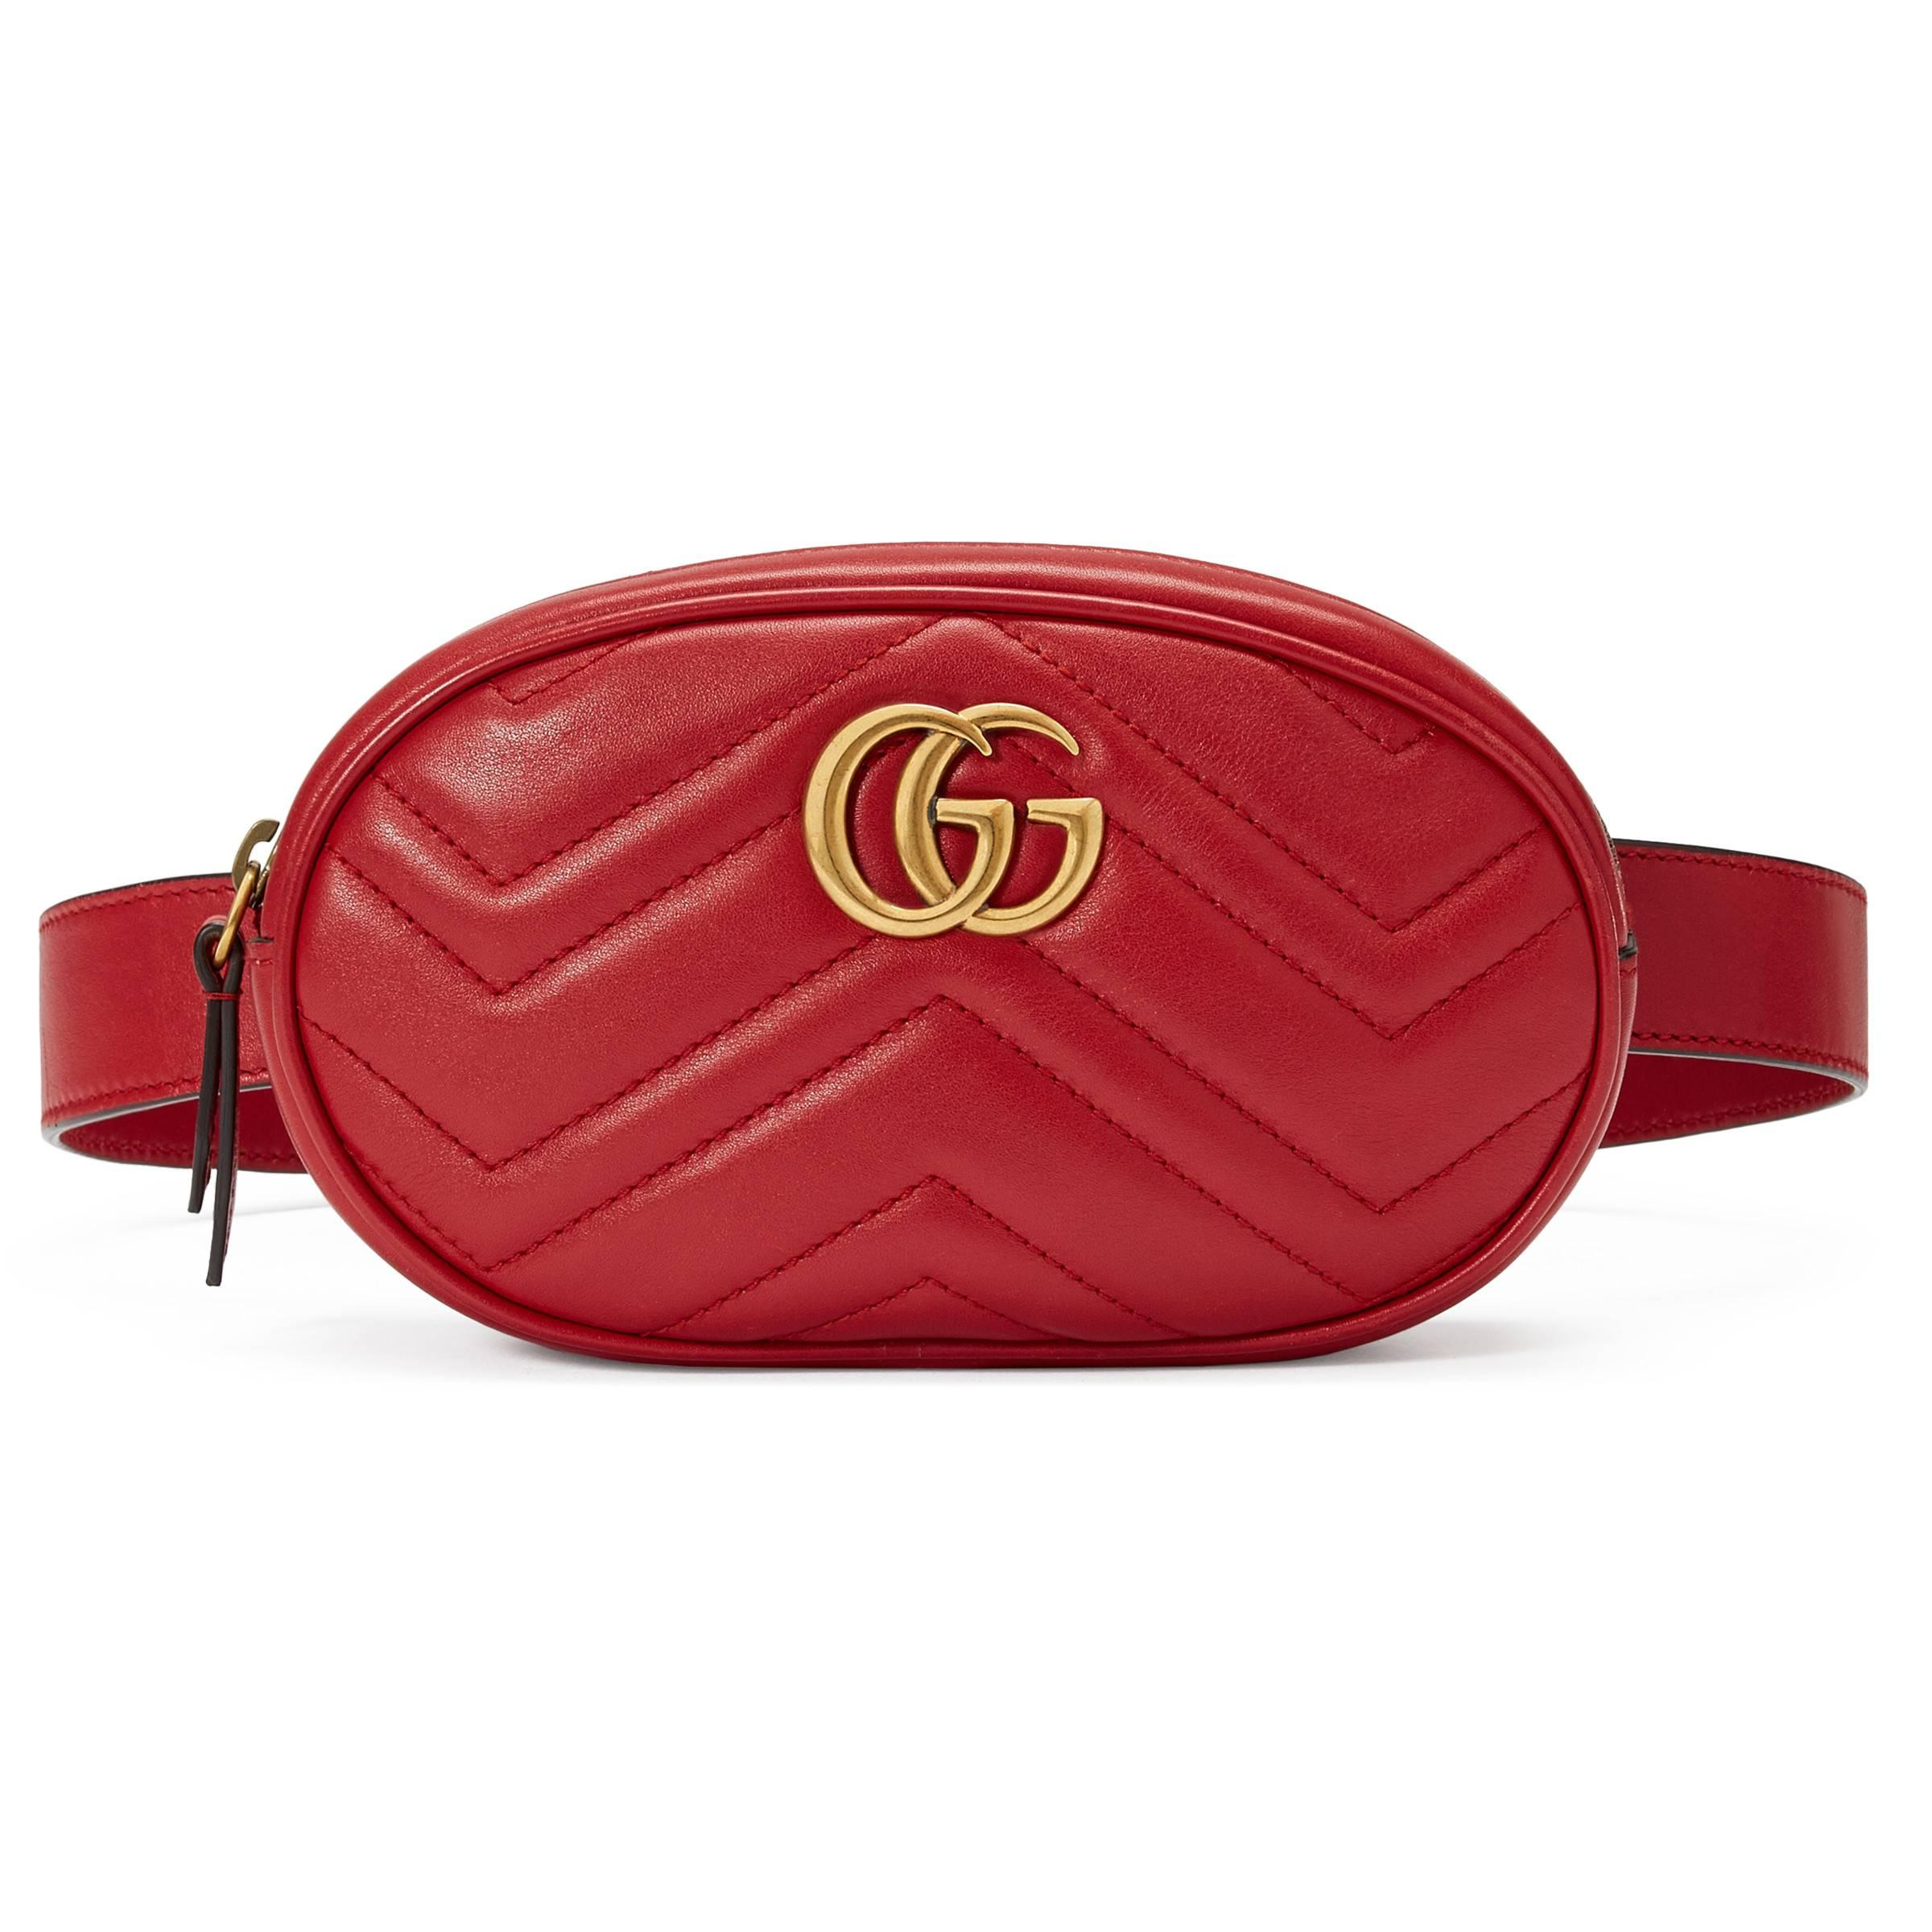 7839453c742 Gucci Gg Marmont Matelassé Leather Belt Bag in Red - Lyst